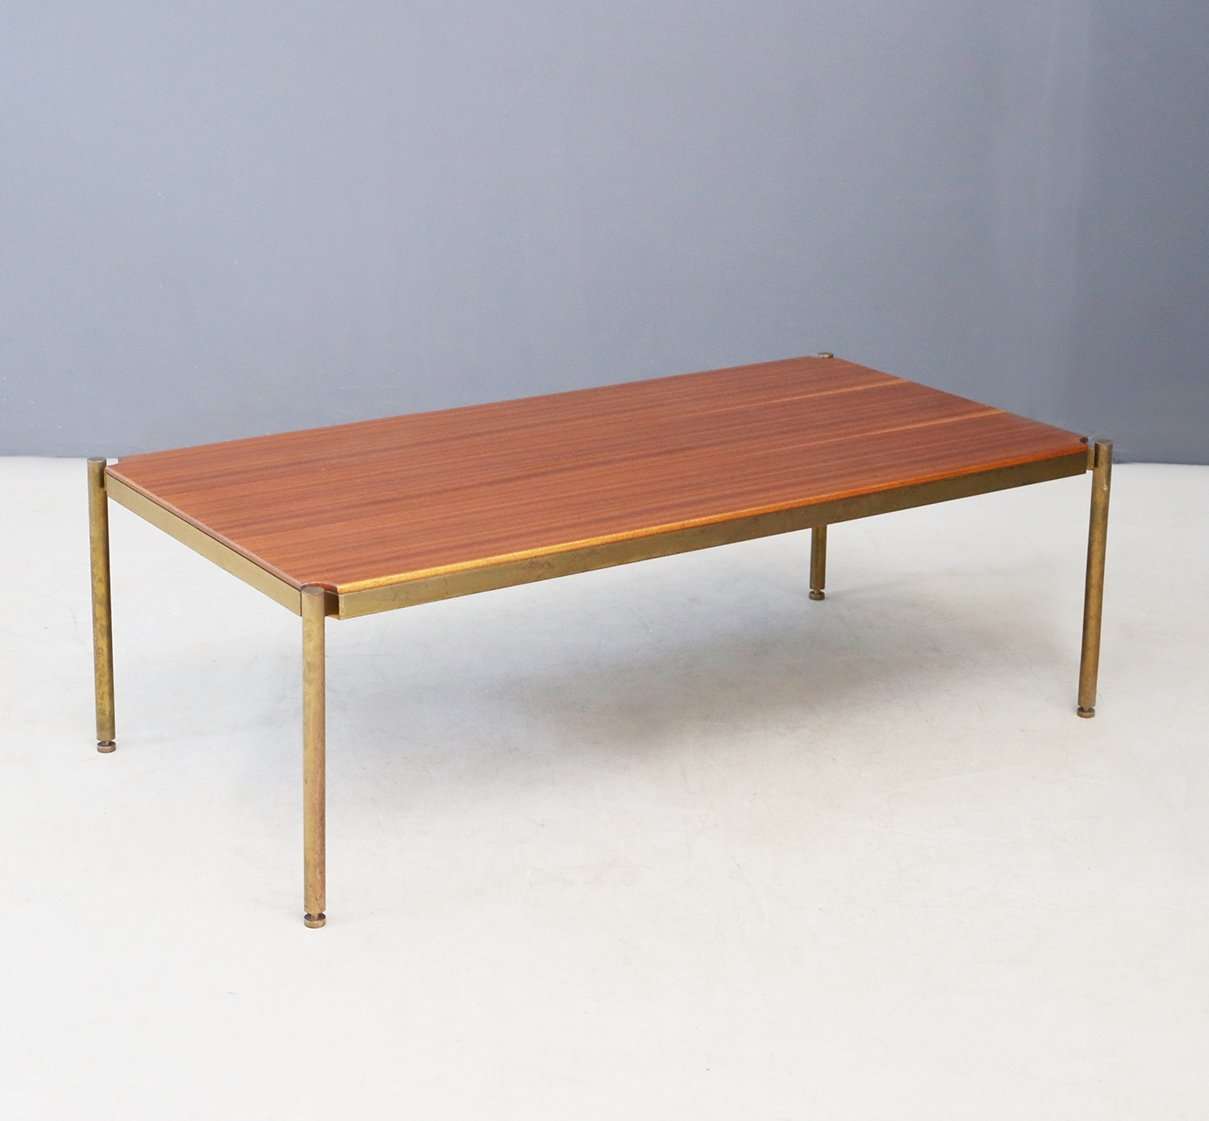 Picture of: Mid Century Coffee Table In Brass Wood By Osvaldo Borsani For Tecno 1950s 134754